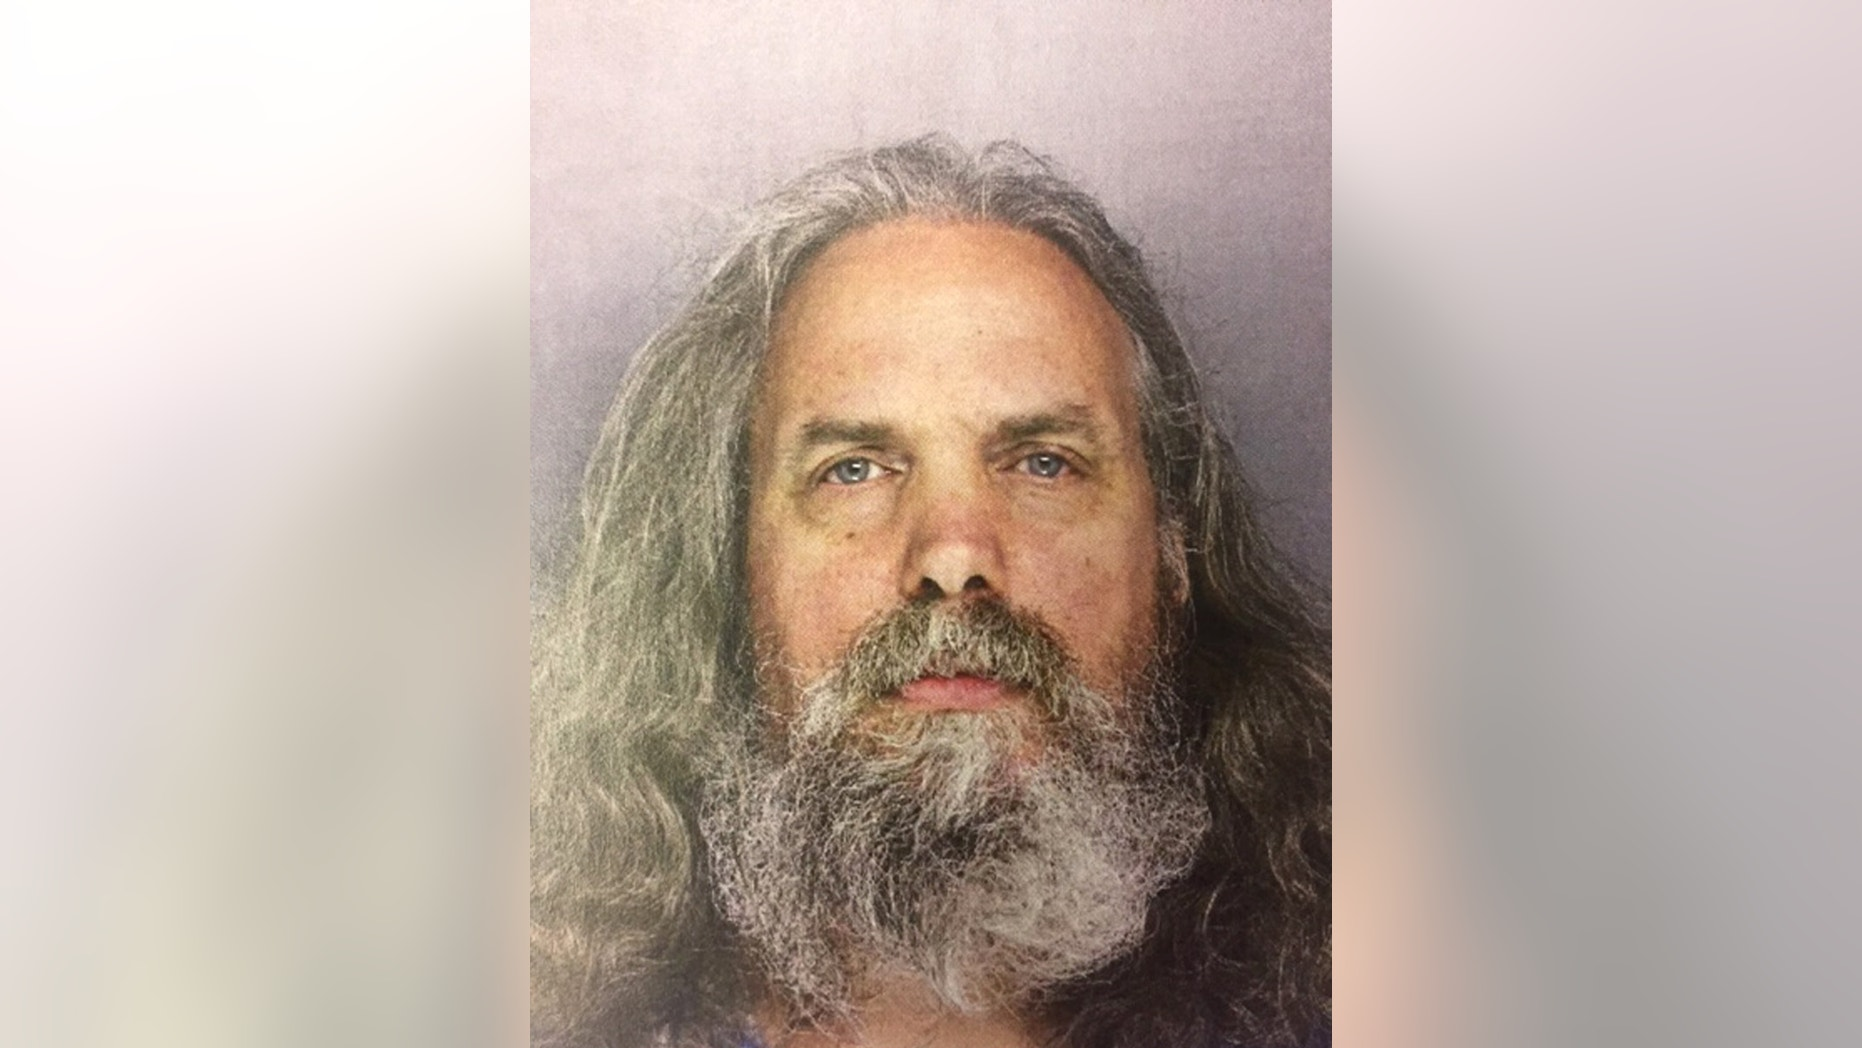 This photo provided by the Lower Southampton Police Department shows Lee Kaplan.